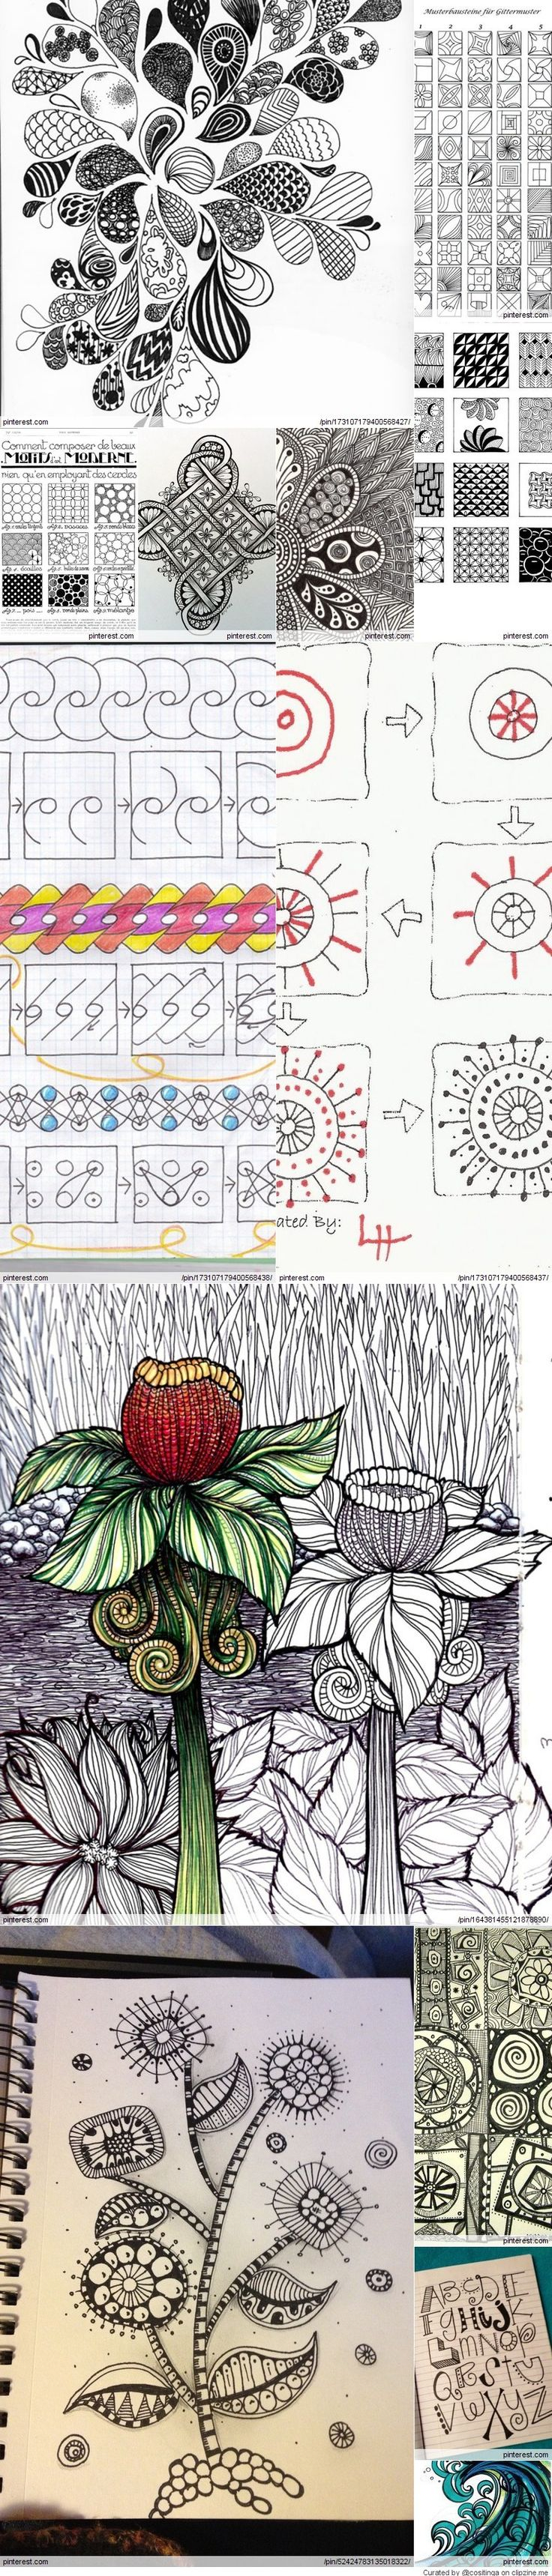 zentangle and bootstrap online builder   doodle form